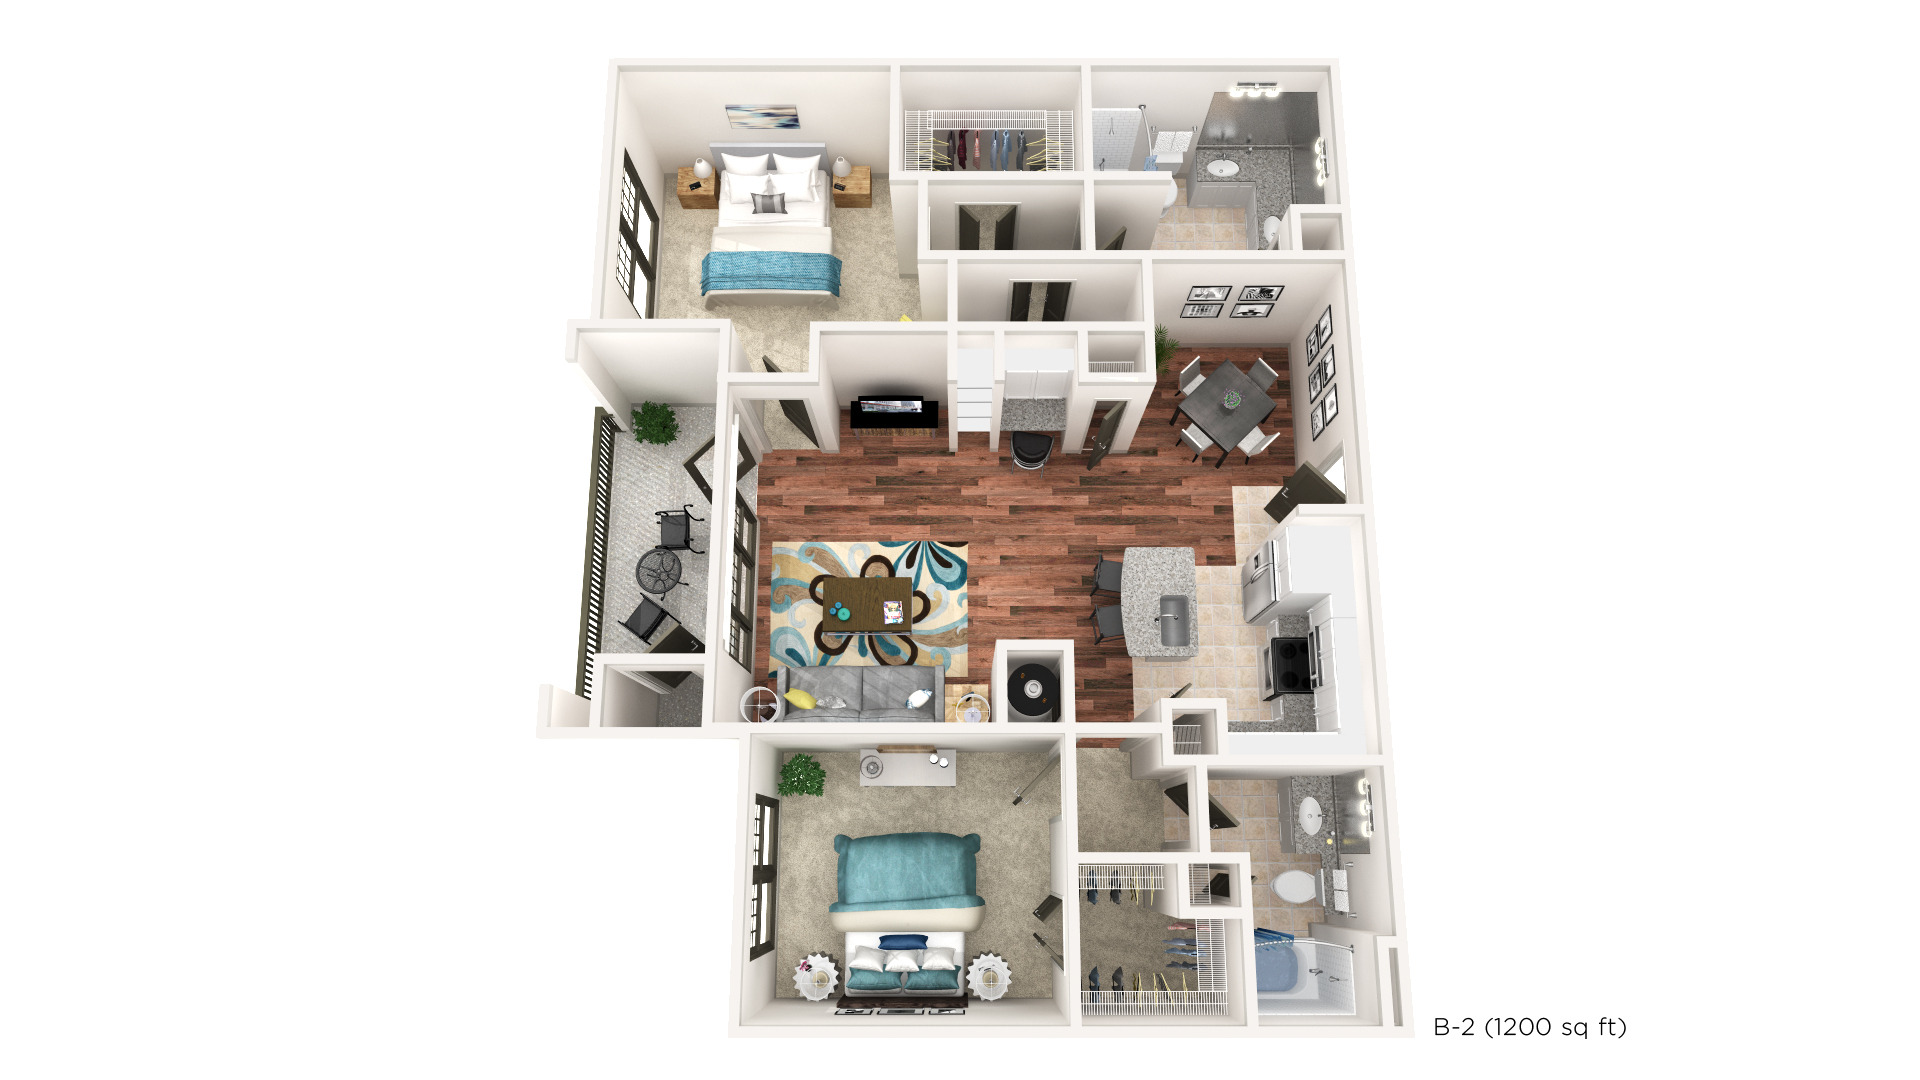 Brookleigh Flats Luxury Apartment Homes - Floorplan - B-2